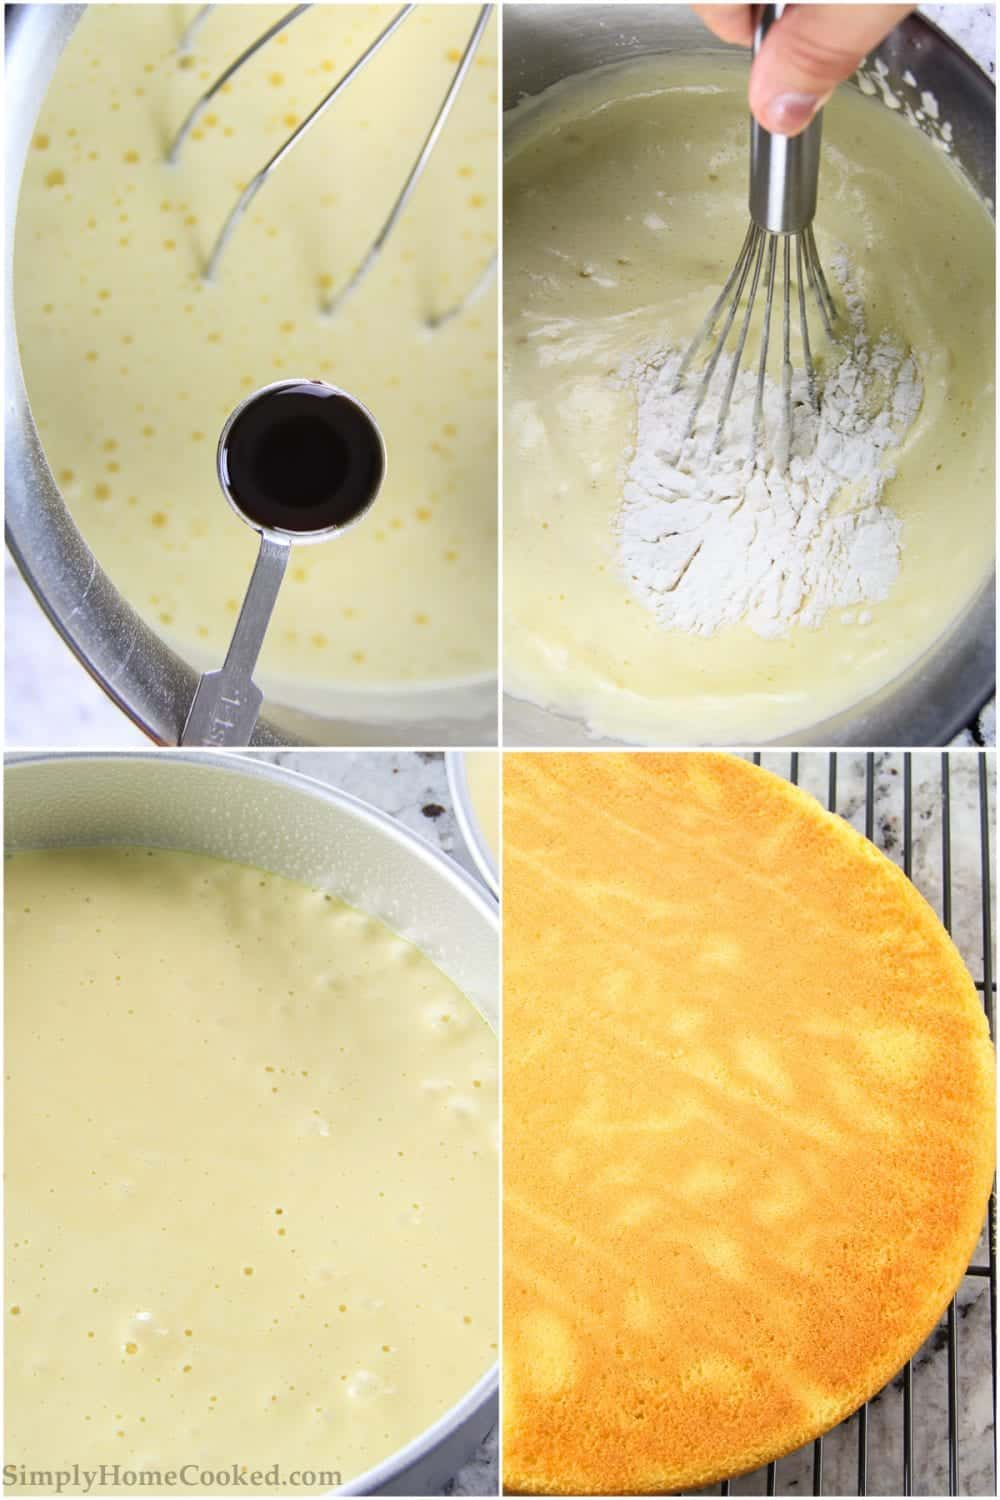 folding flour into cake batter, baked sponge cake in a baking pan